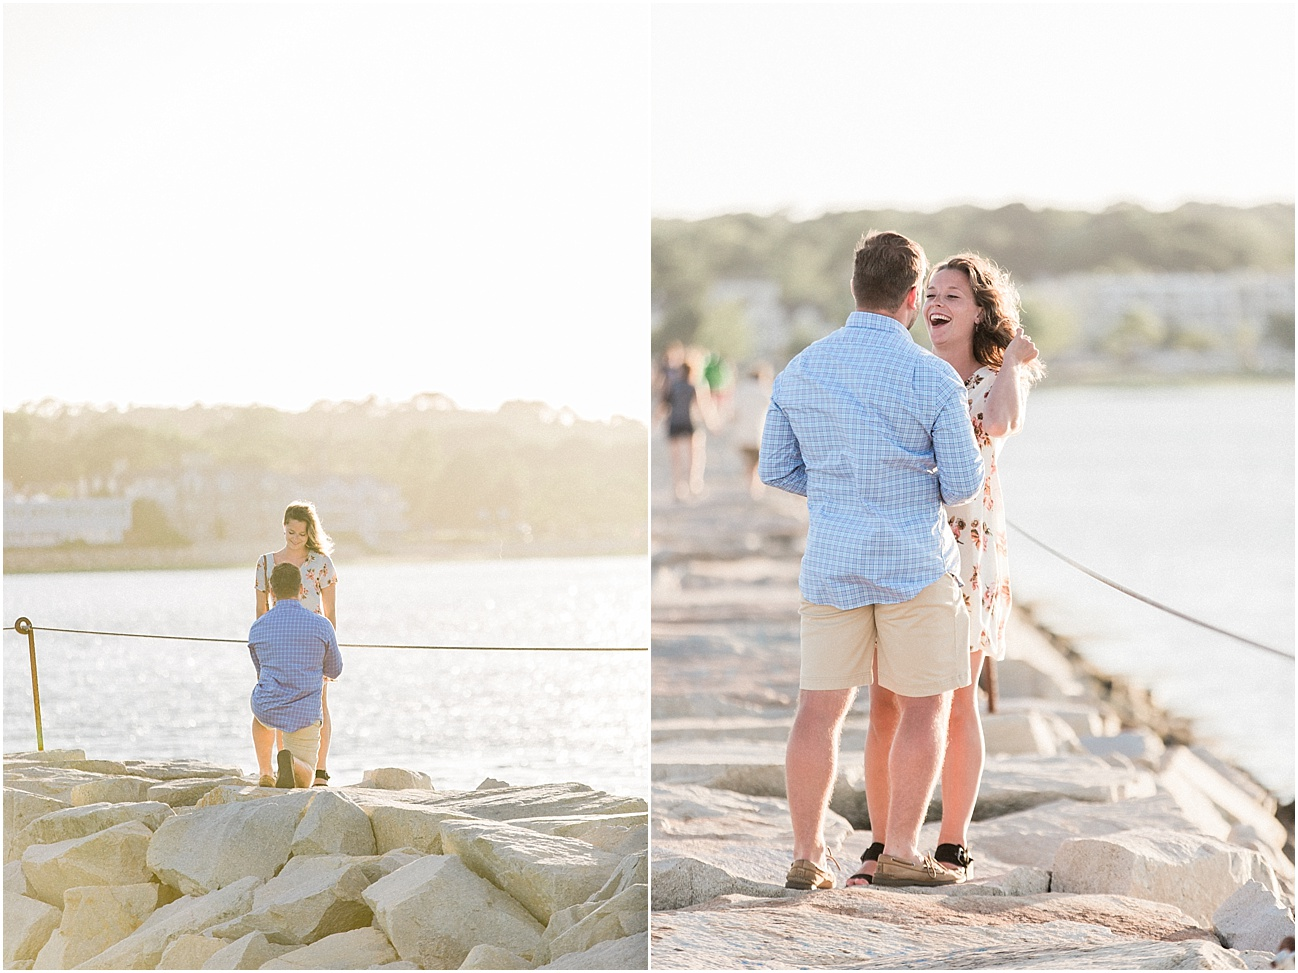 plymouth_jetty_proposal_engagement_cape_cod_boston_wedding_photographer_meredith_jane_photography_photo_0519.jpg